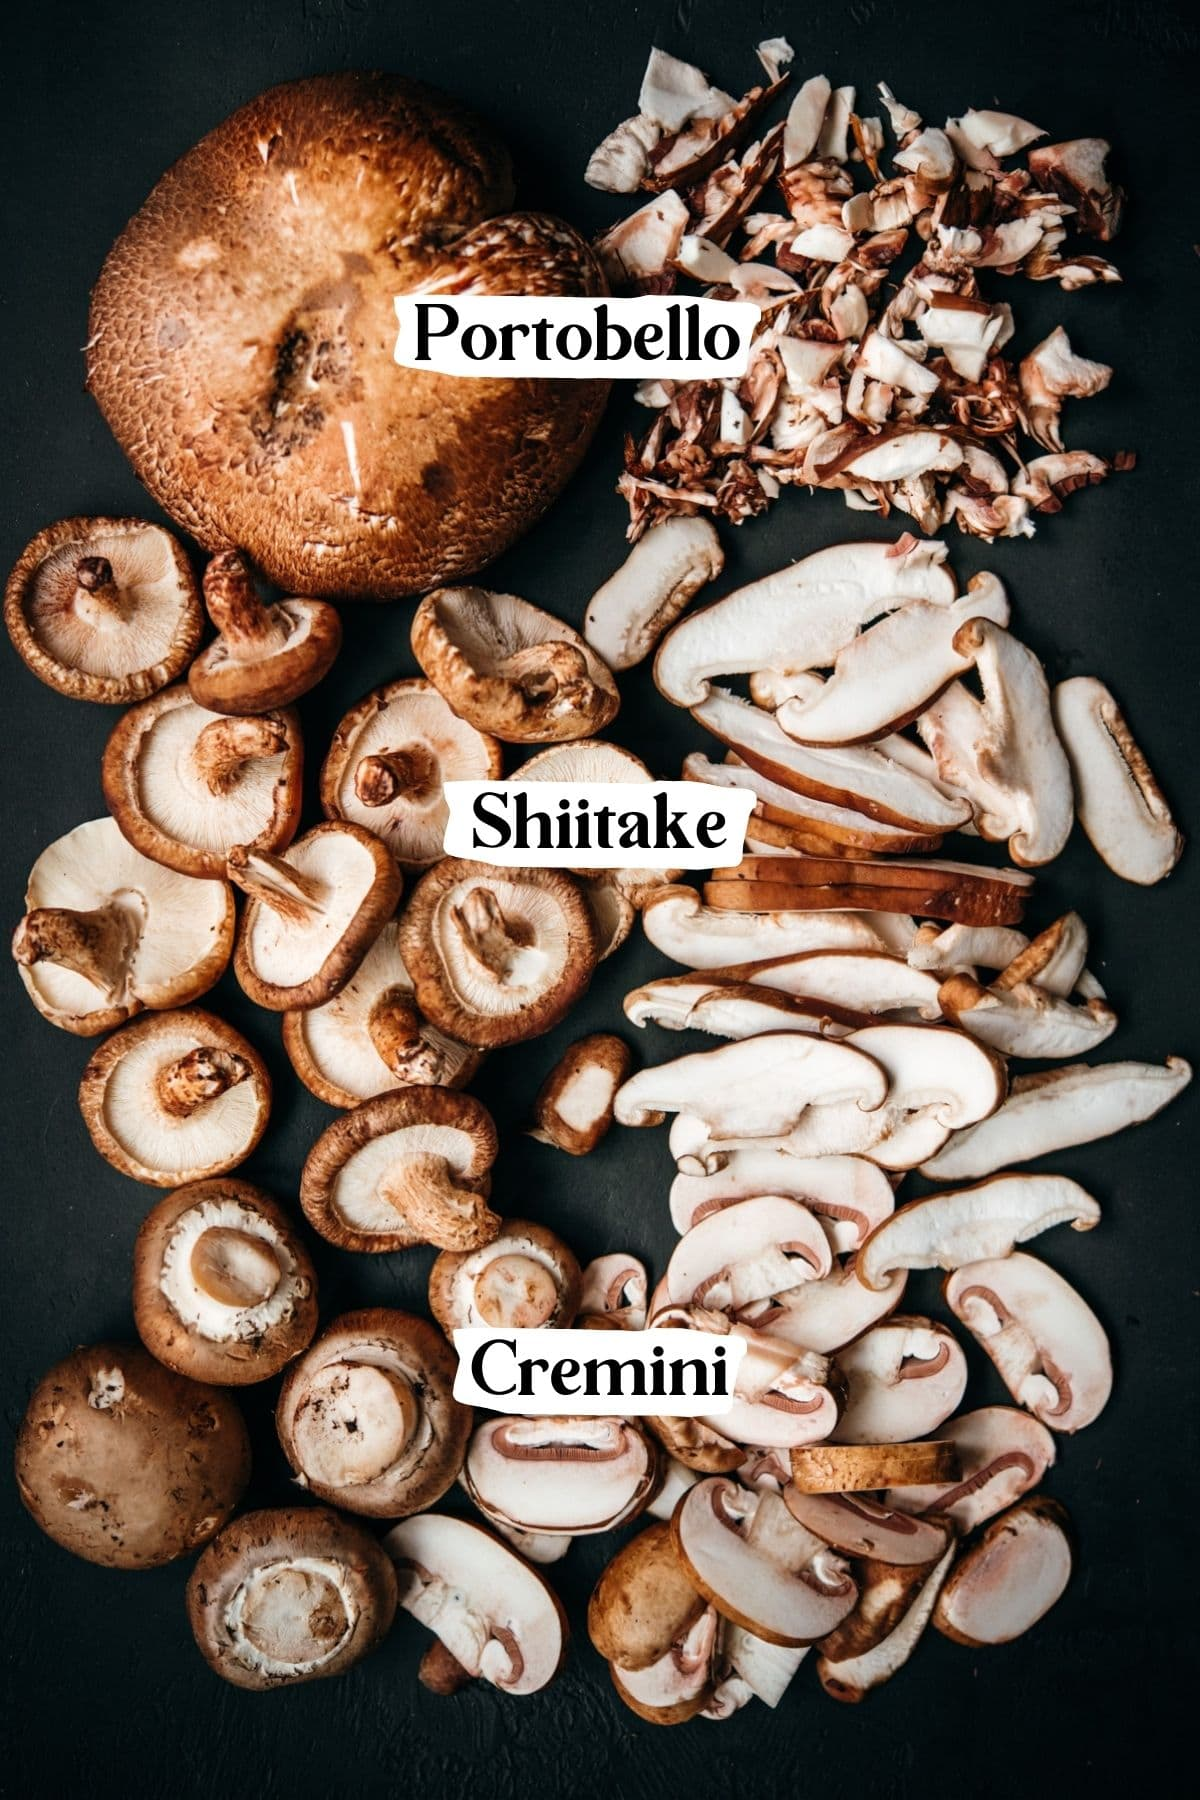 overhead view of 3 types of mushrooms on black backdrop.